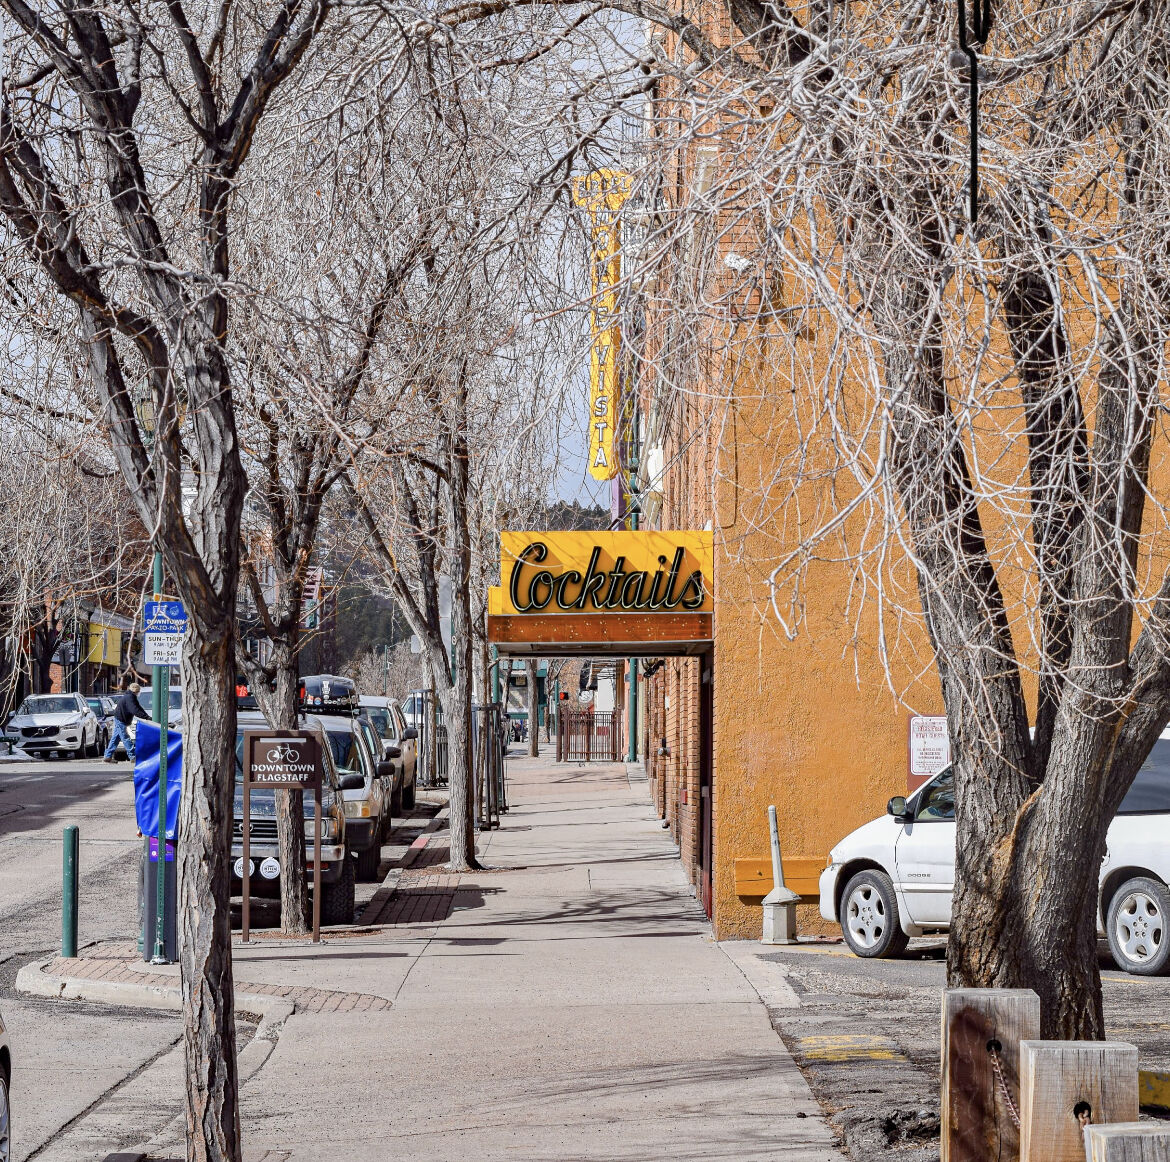 Flagstaff: One of the worst for job seekers